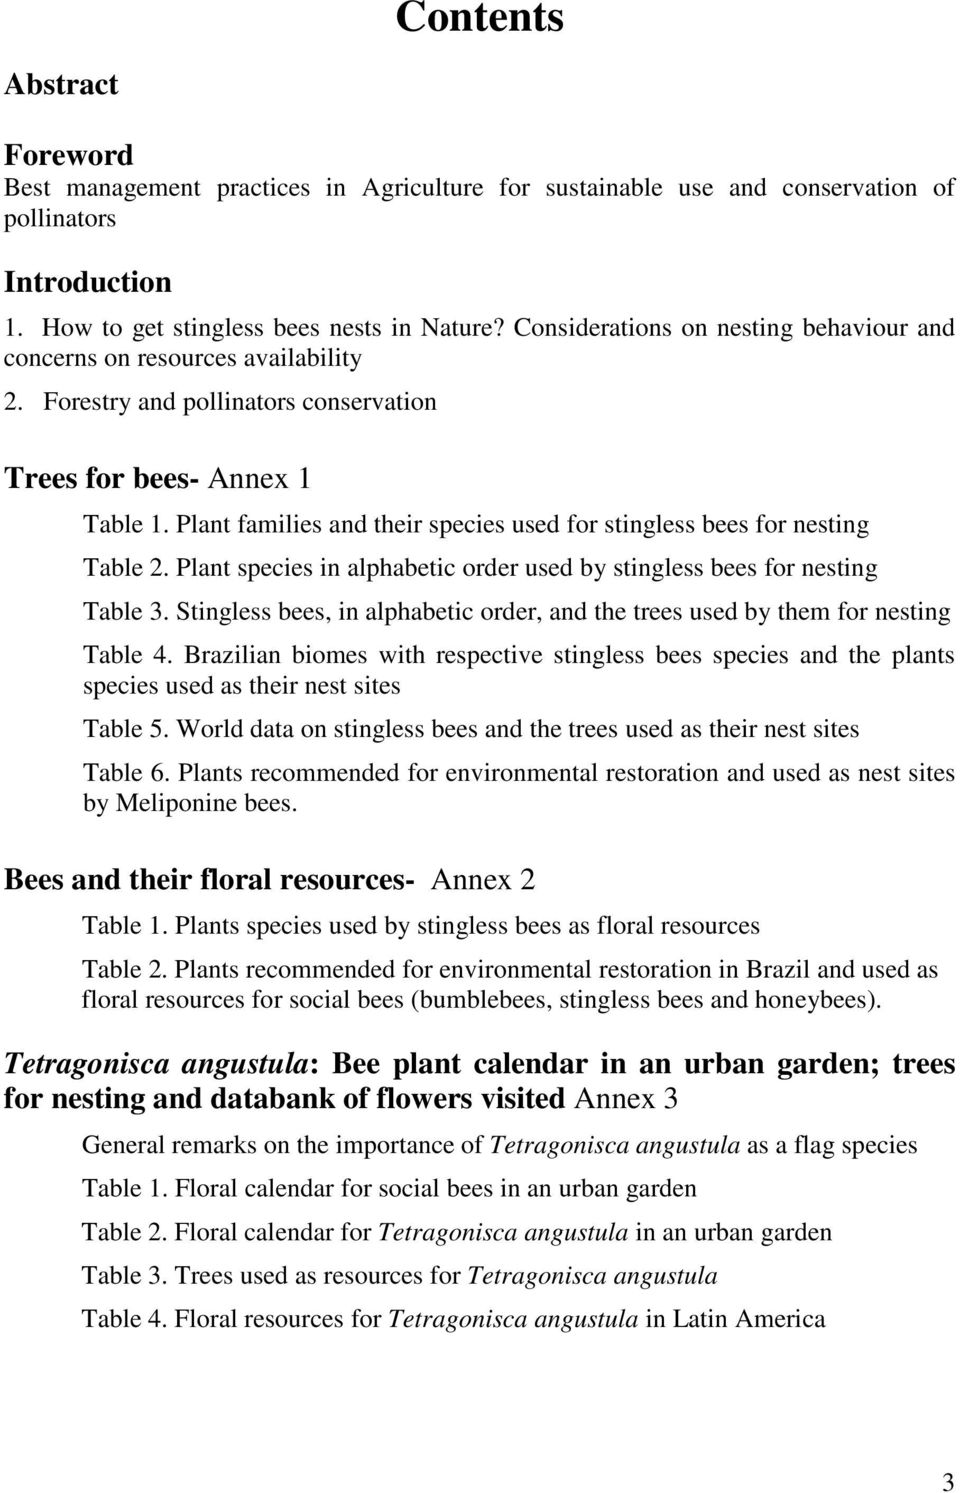 Plant families and their species used for stingless bees for nesting Table 2. Plant species in alphabetic order used by stingless bees for nesting Table 3.